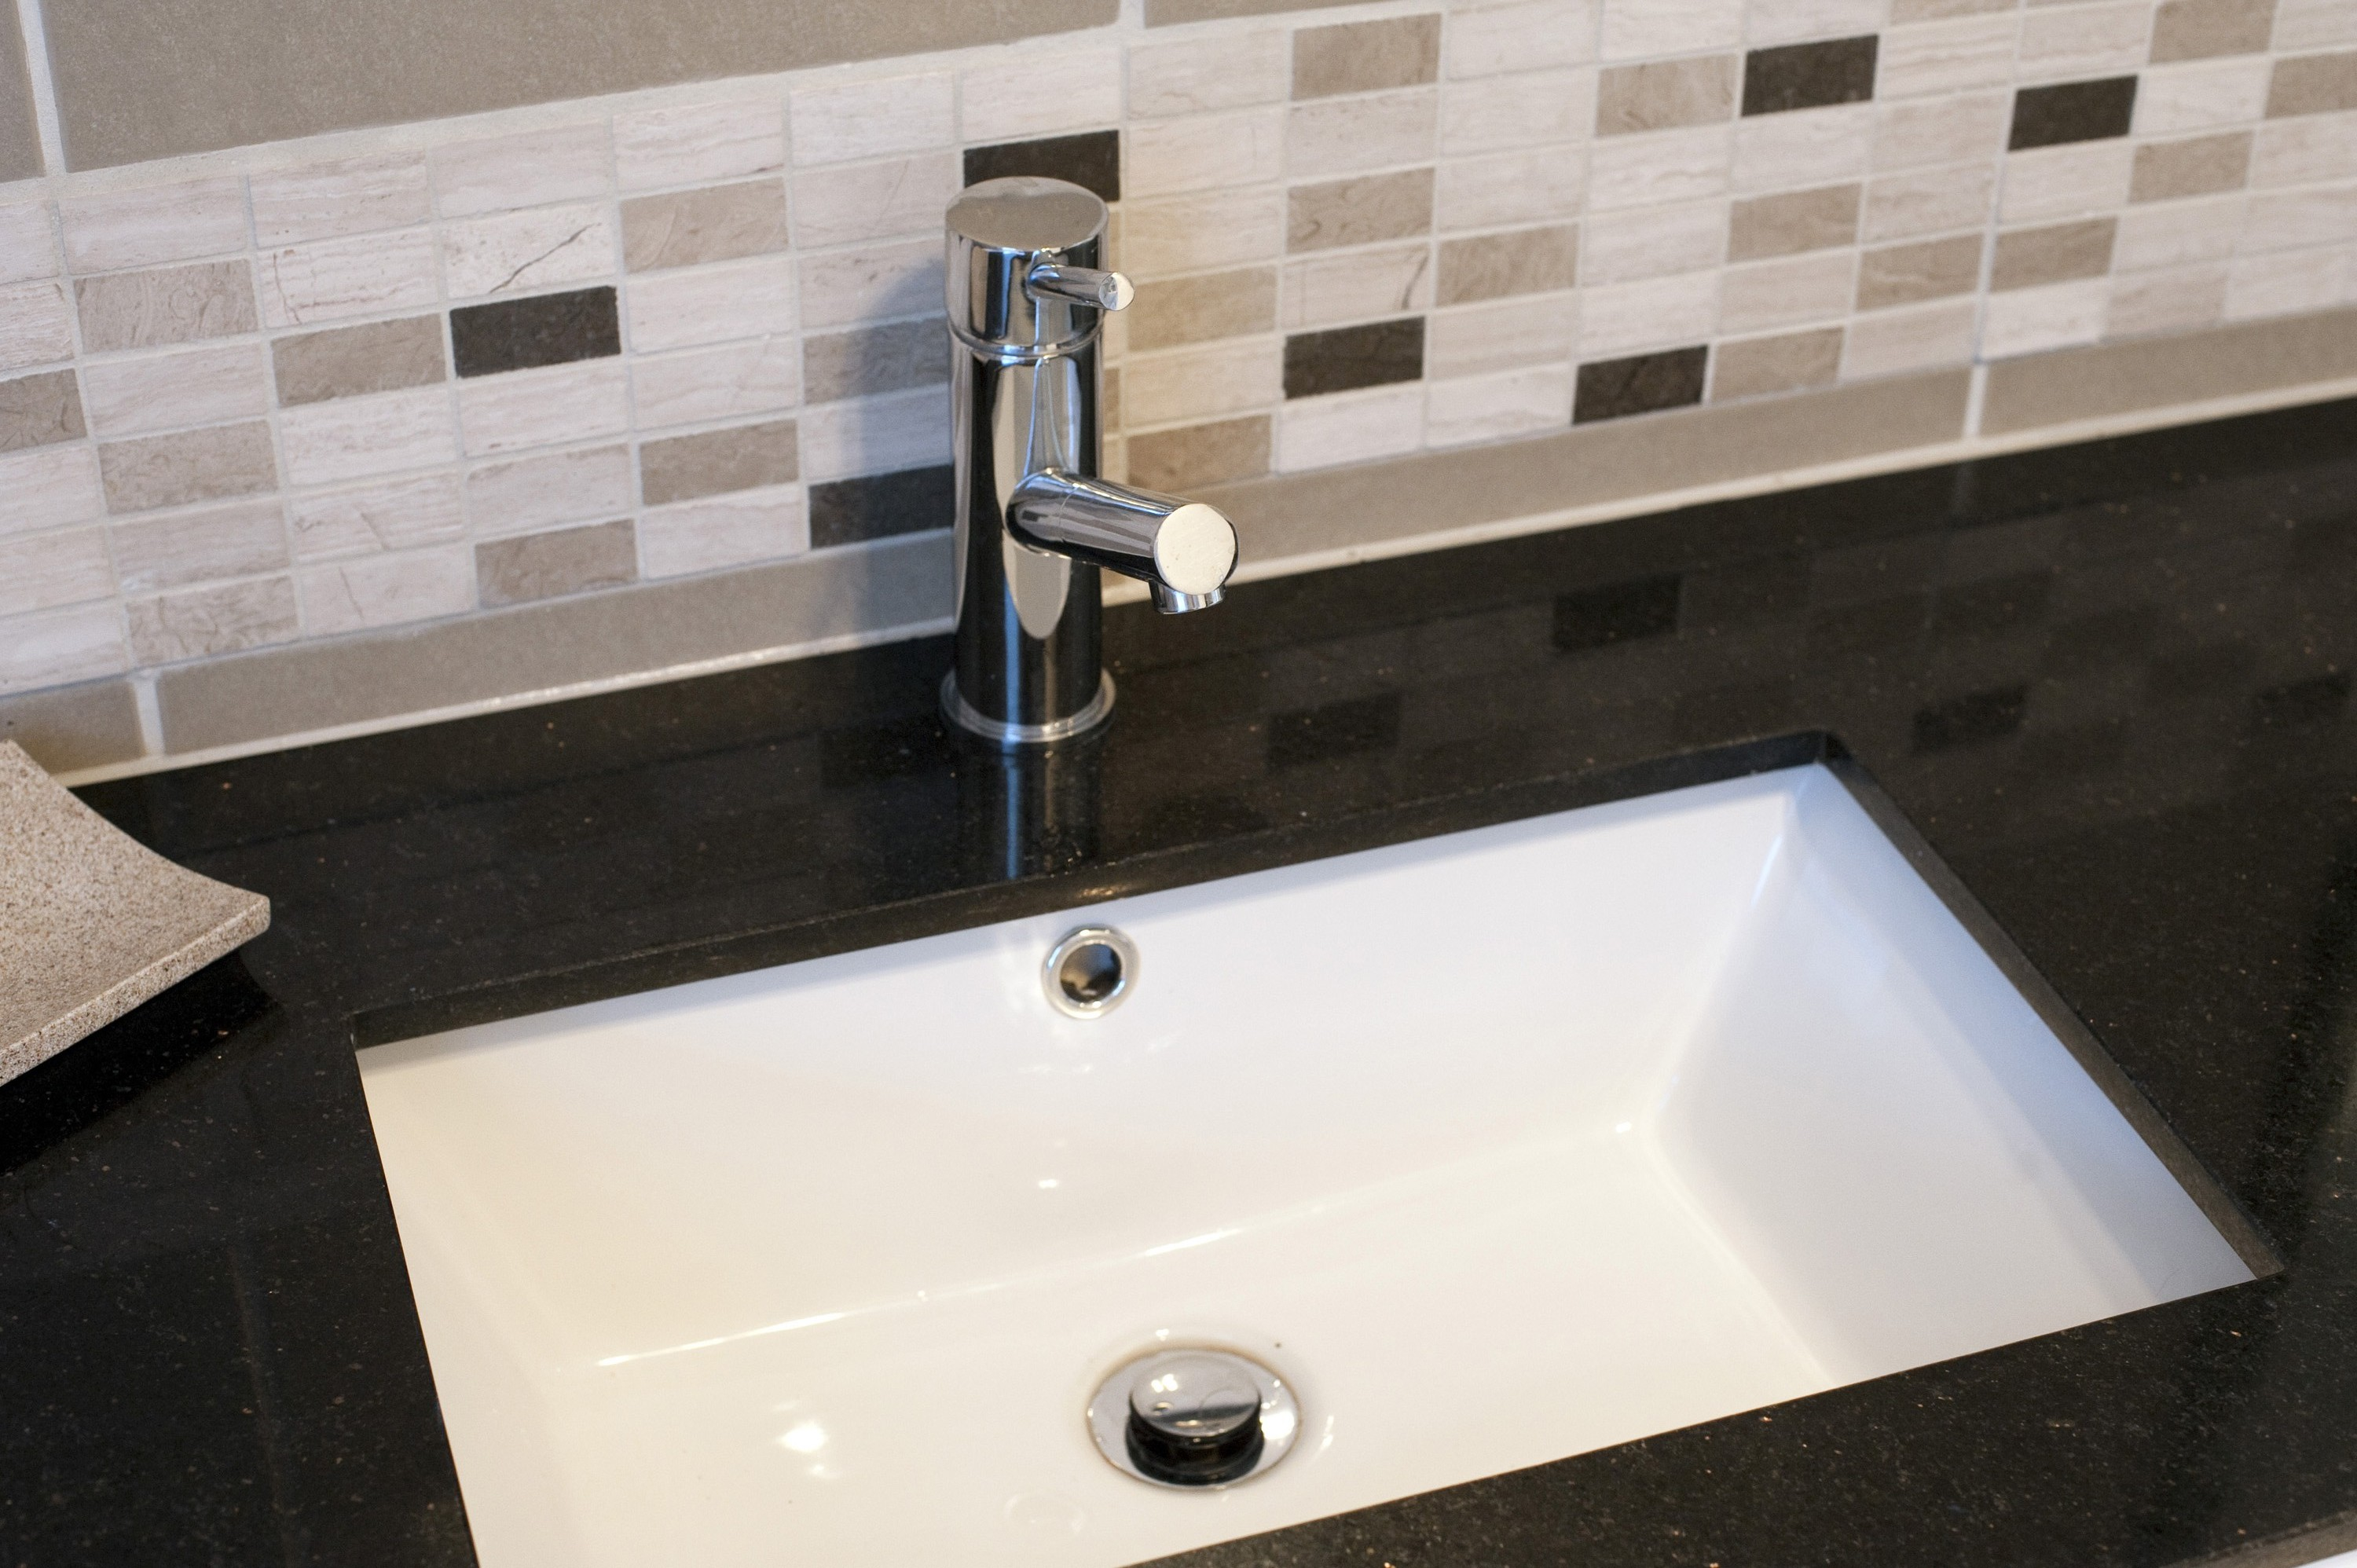 Square bathroom sinks - Square Bathroom Sinks 18